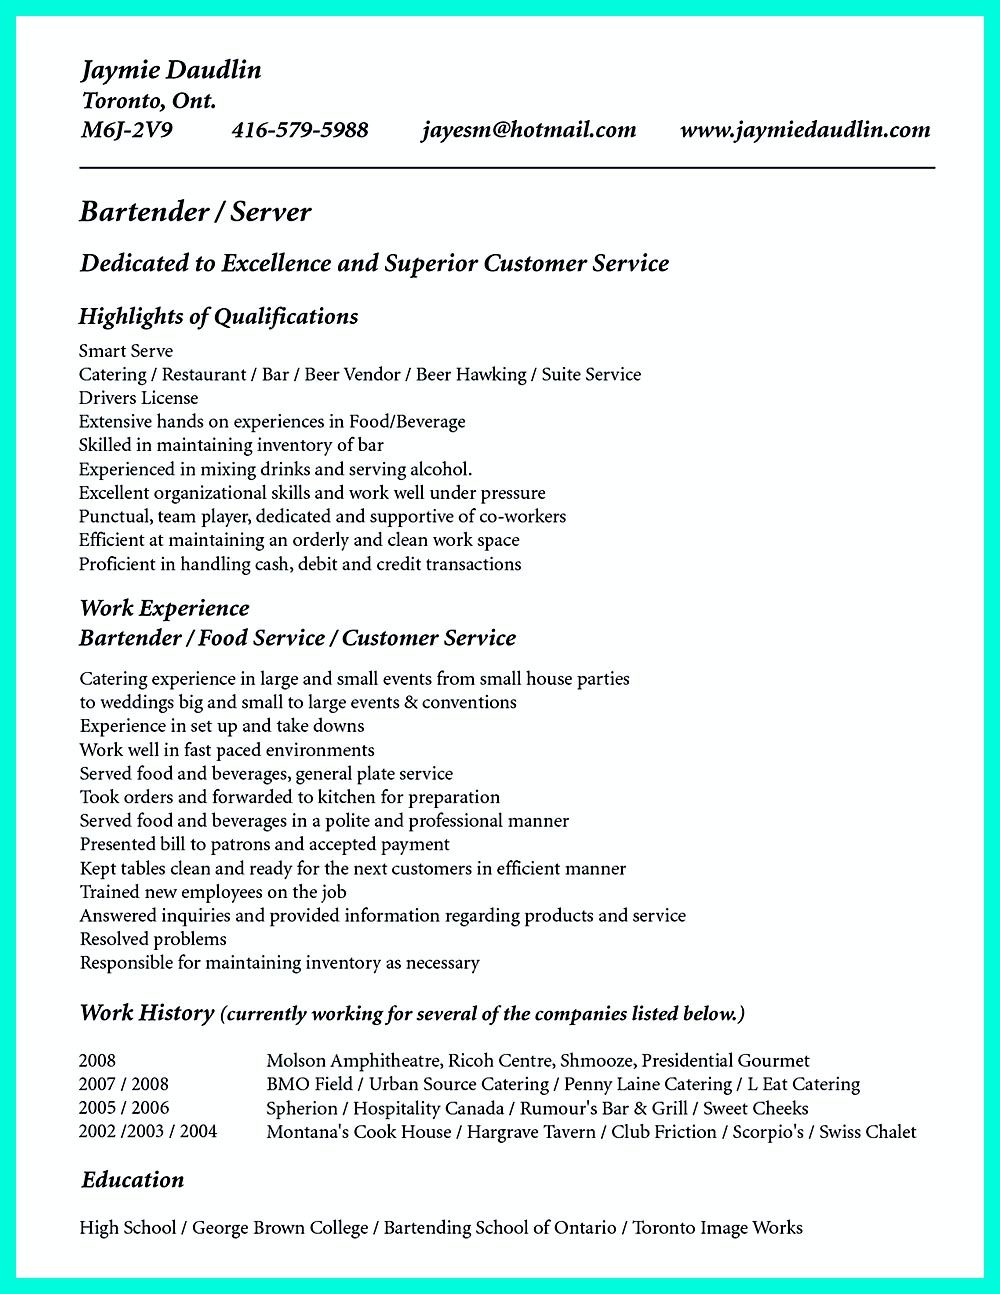 Cocktail Server Resume Skills To Convince Restaurants Or Cafe Resume Skills Job Resume Samples Resume Examples